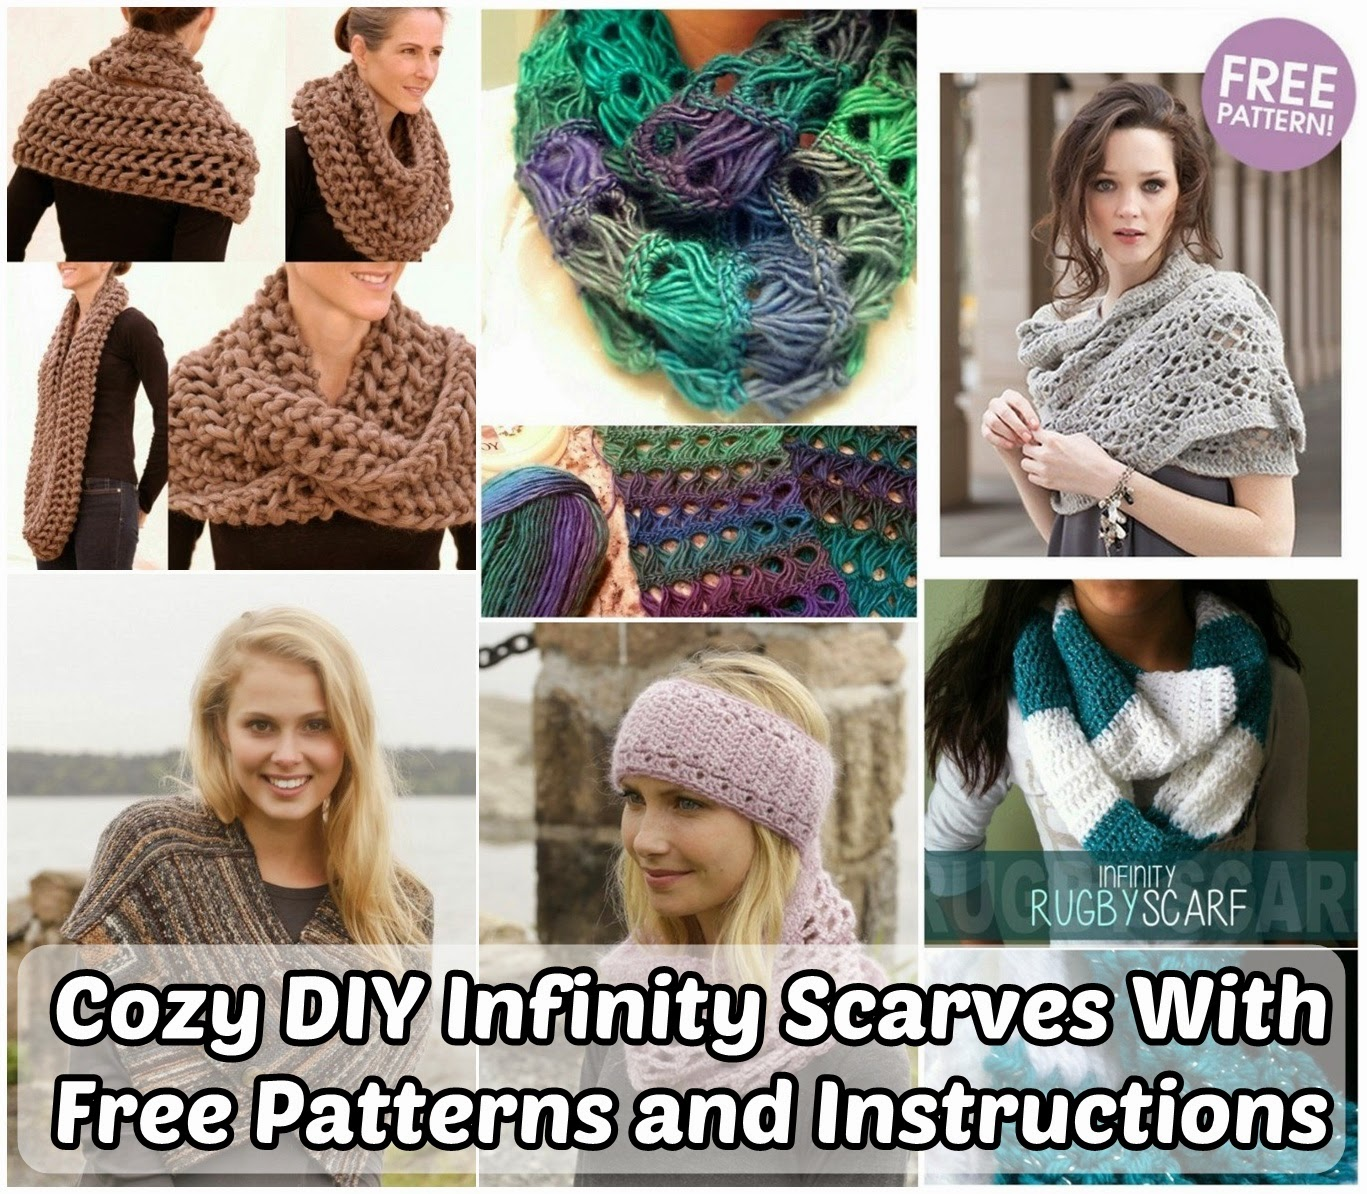 Cozy DIY Infinity Scarves With Free Patterns and Instructions